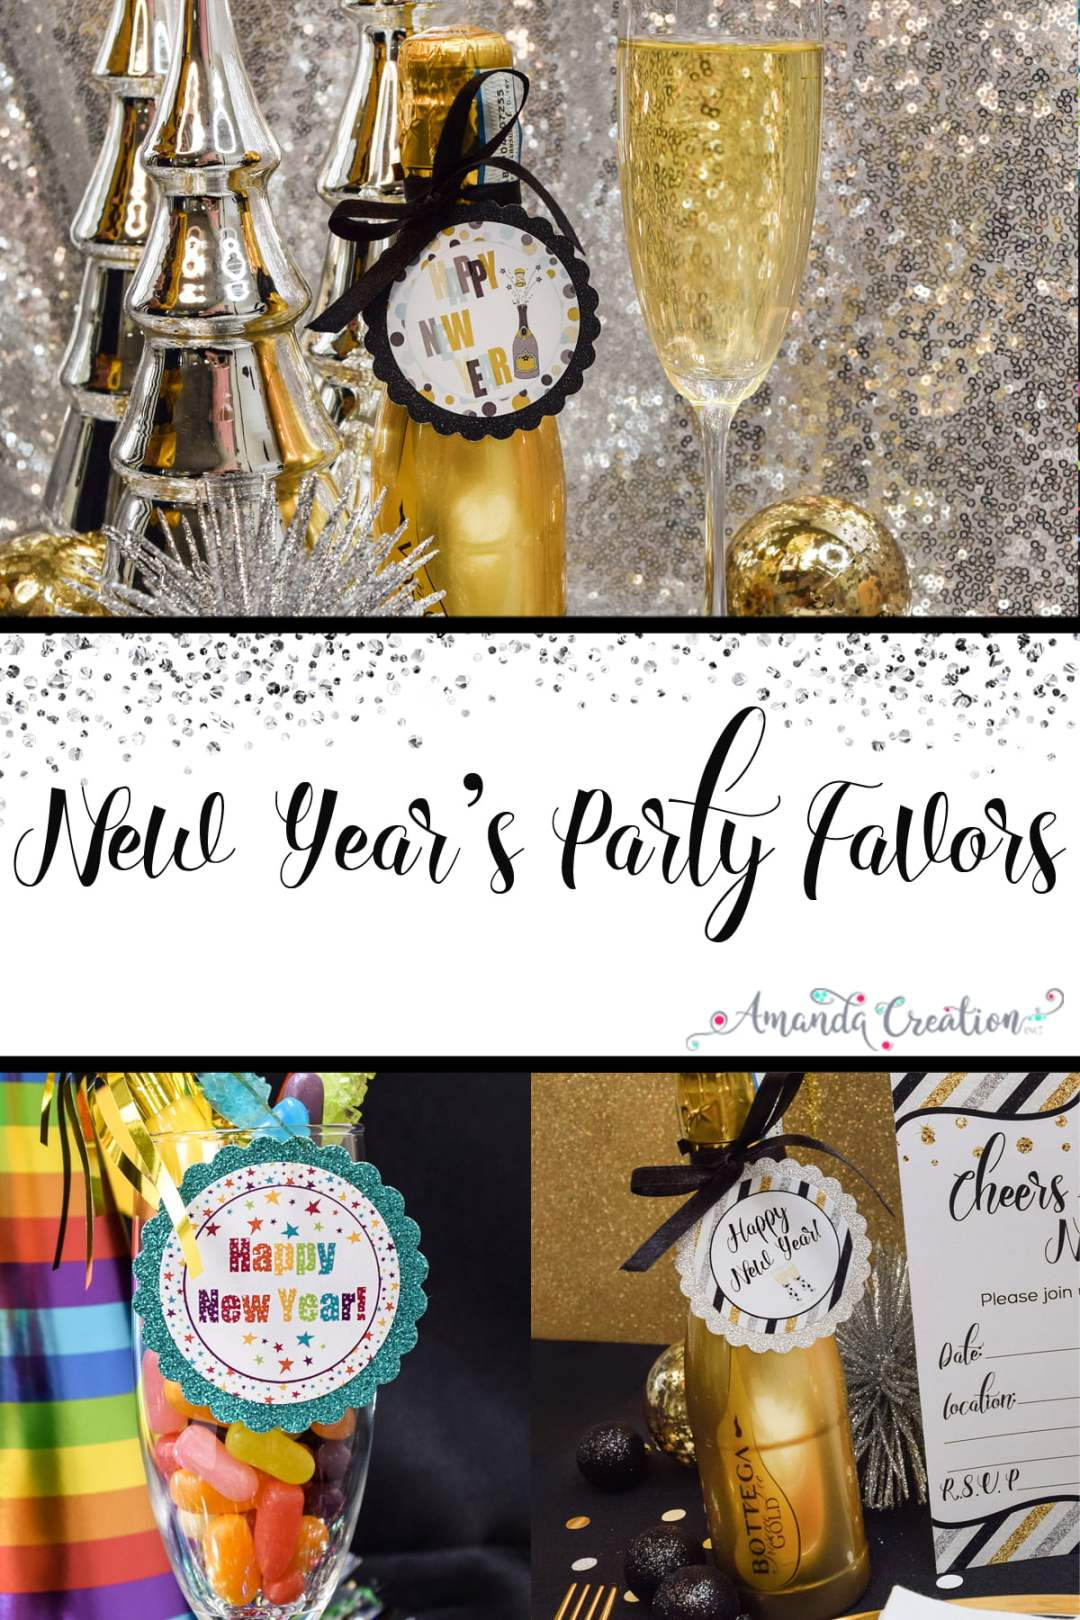 New Year's Party Favors